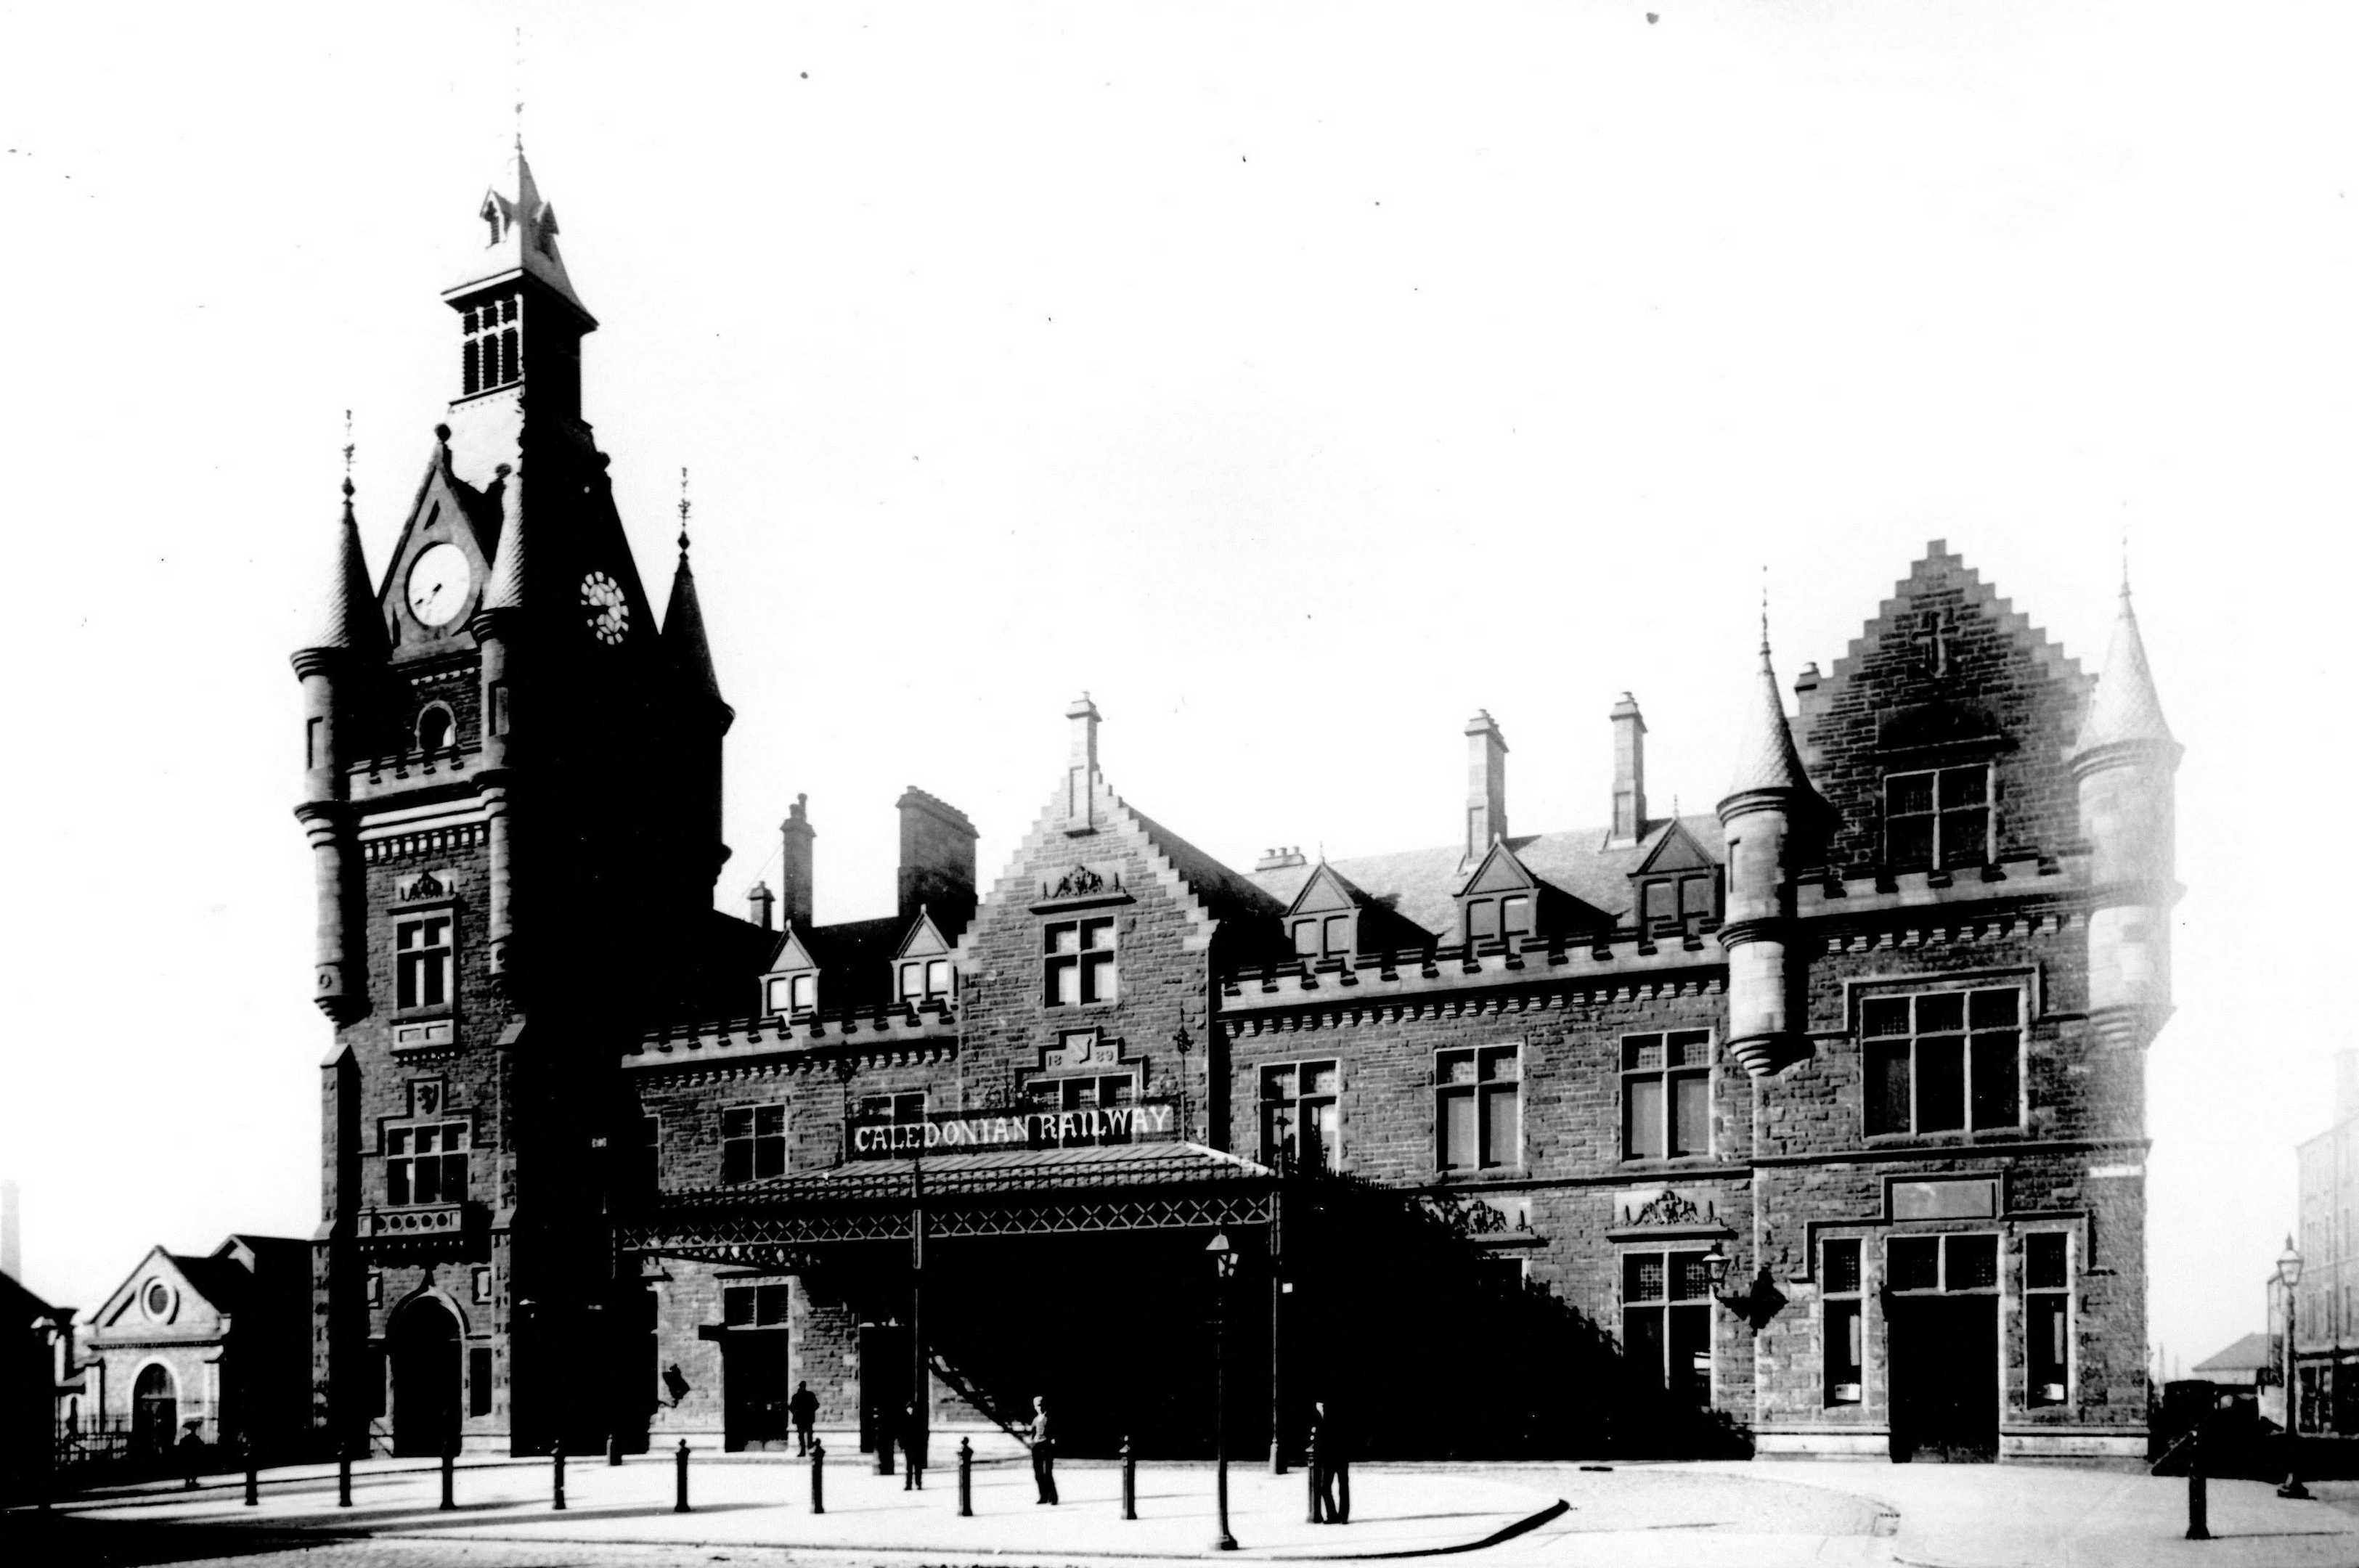 The spectacular Dundee West station building